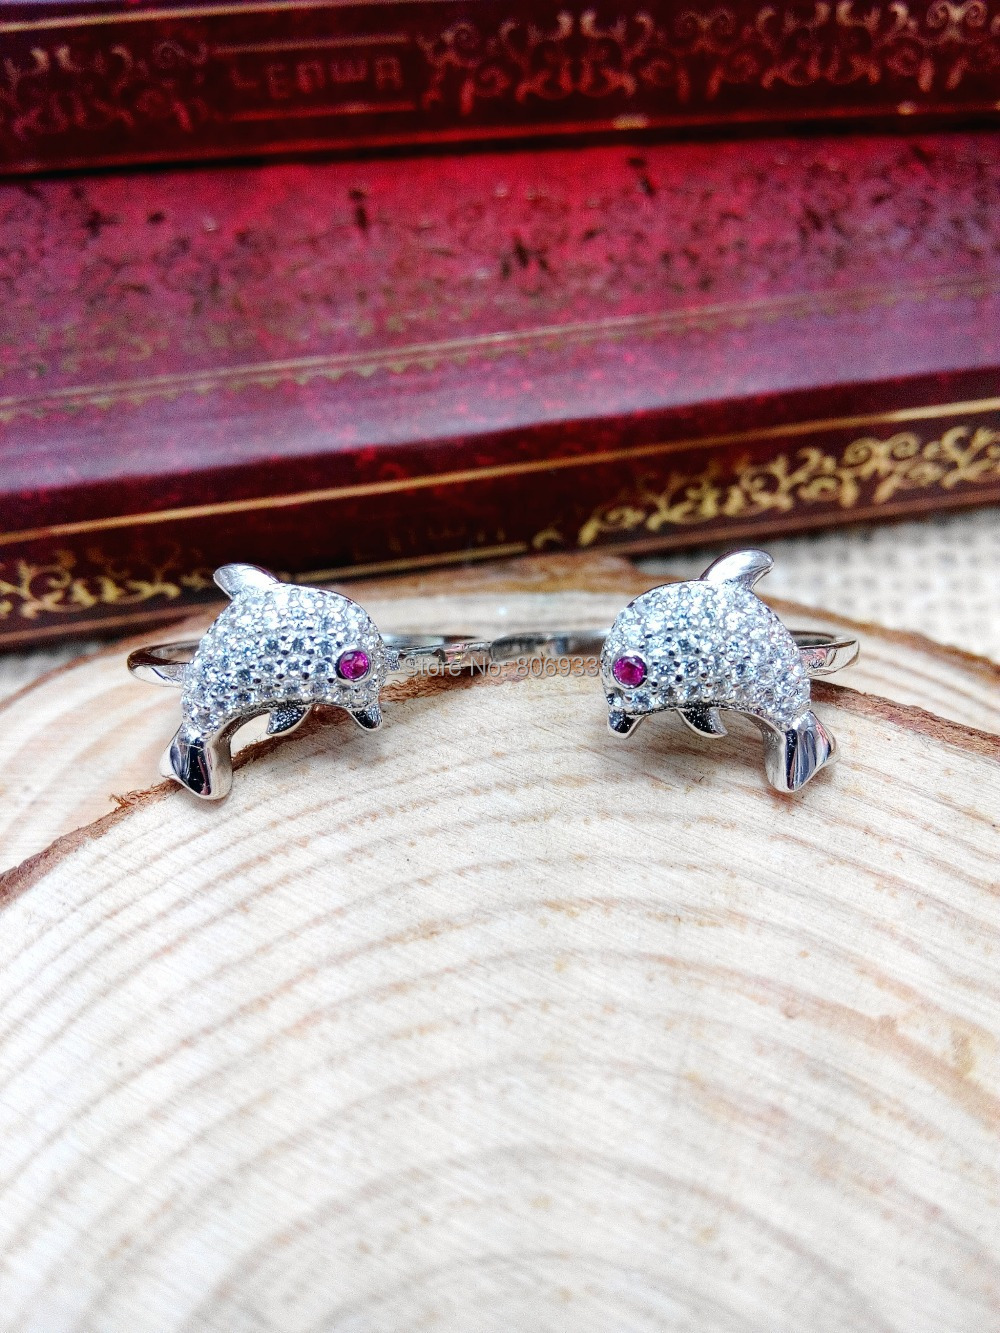 Fashion s925 sterling silver jewelry ring dolphin wedding couple Ring - True Love Jewelry Factory store